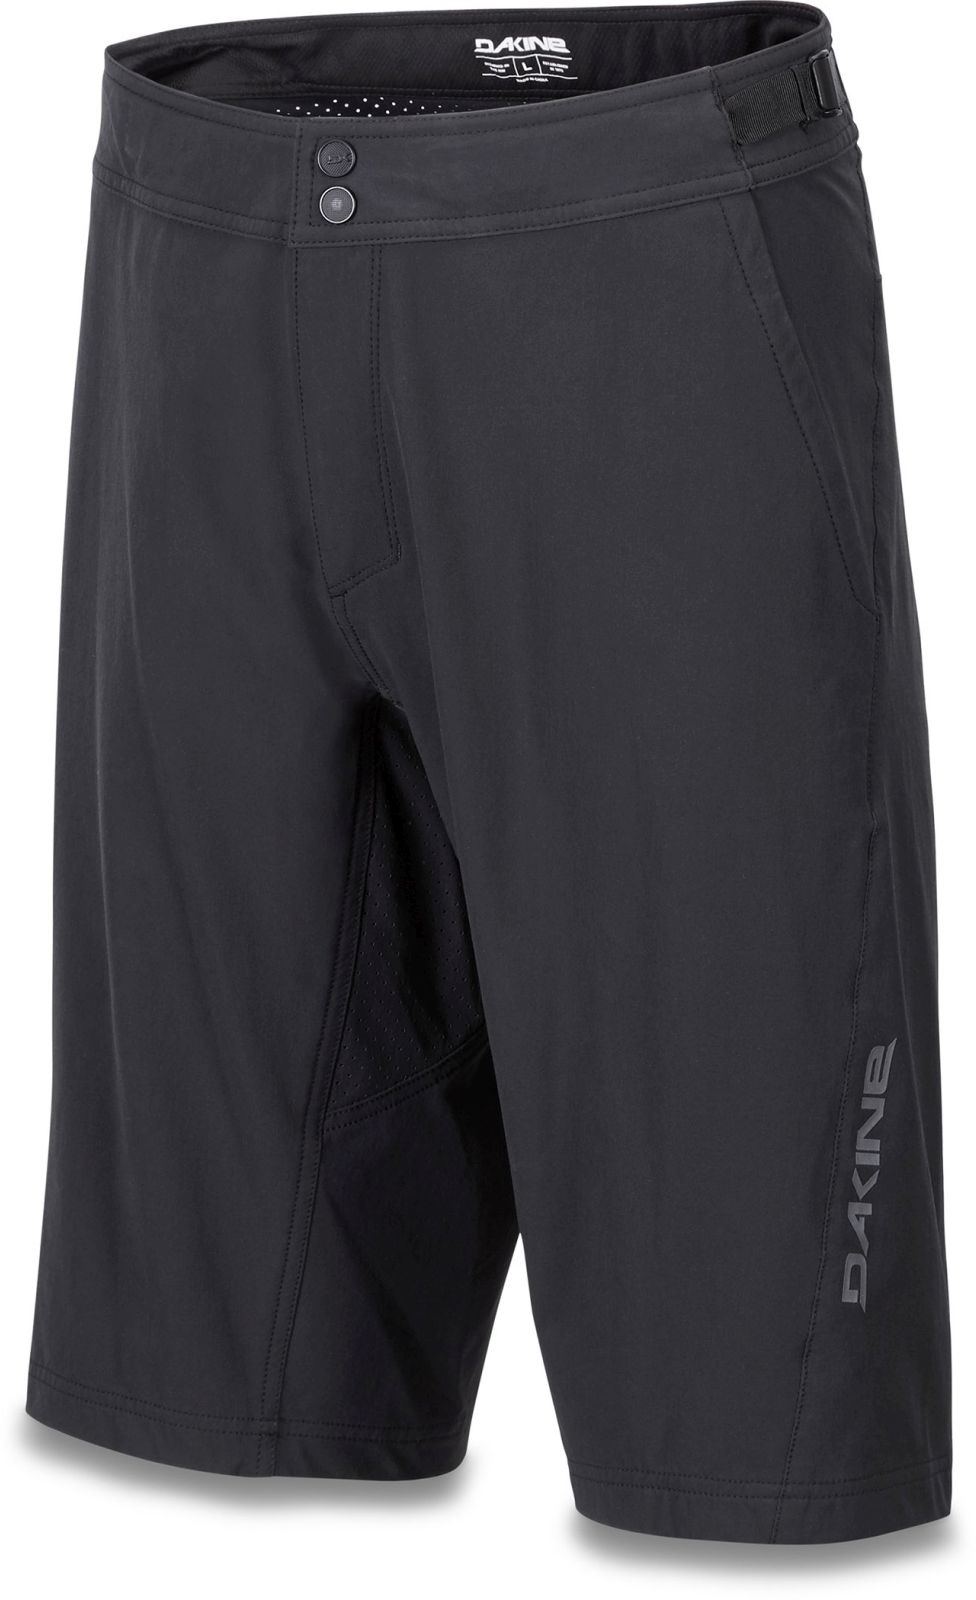 Dakine Vectra Short - black XL